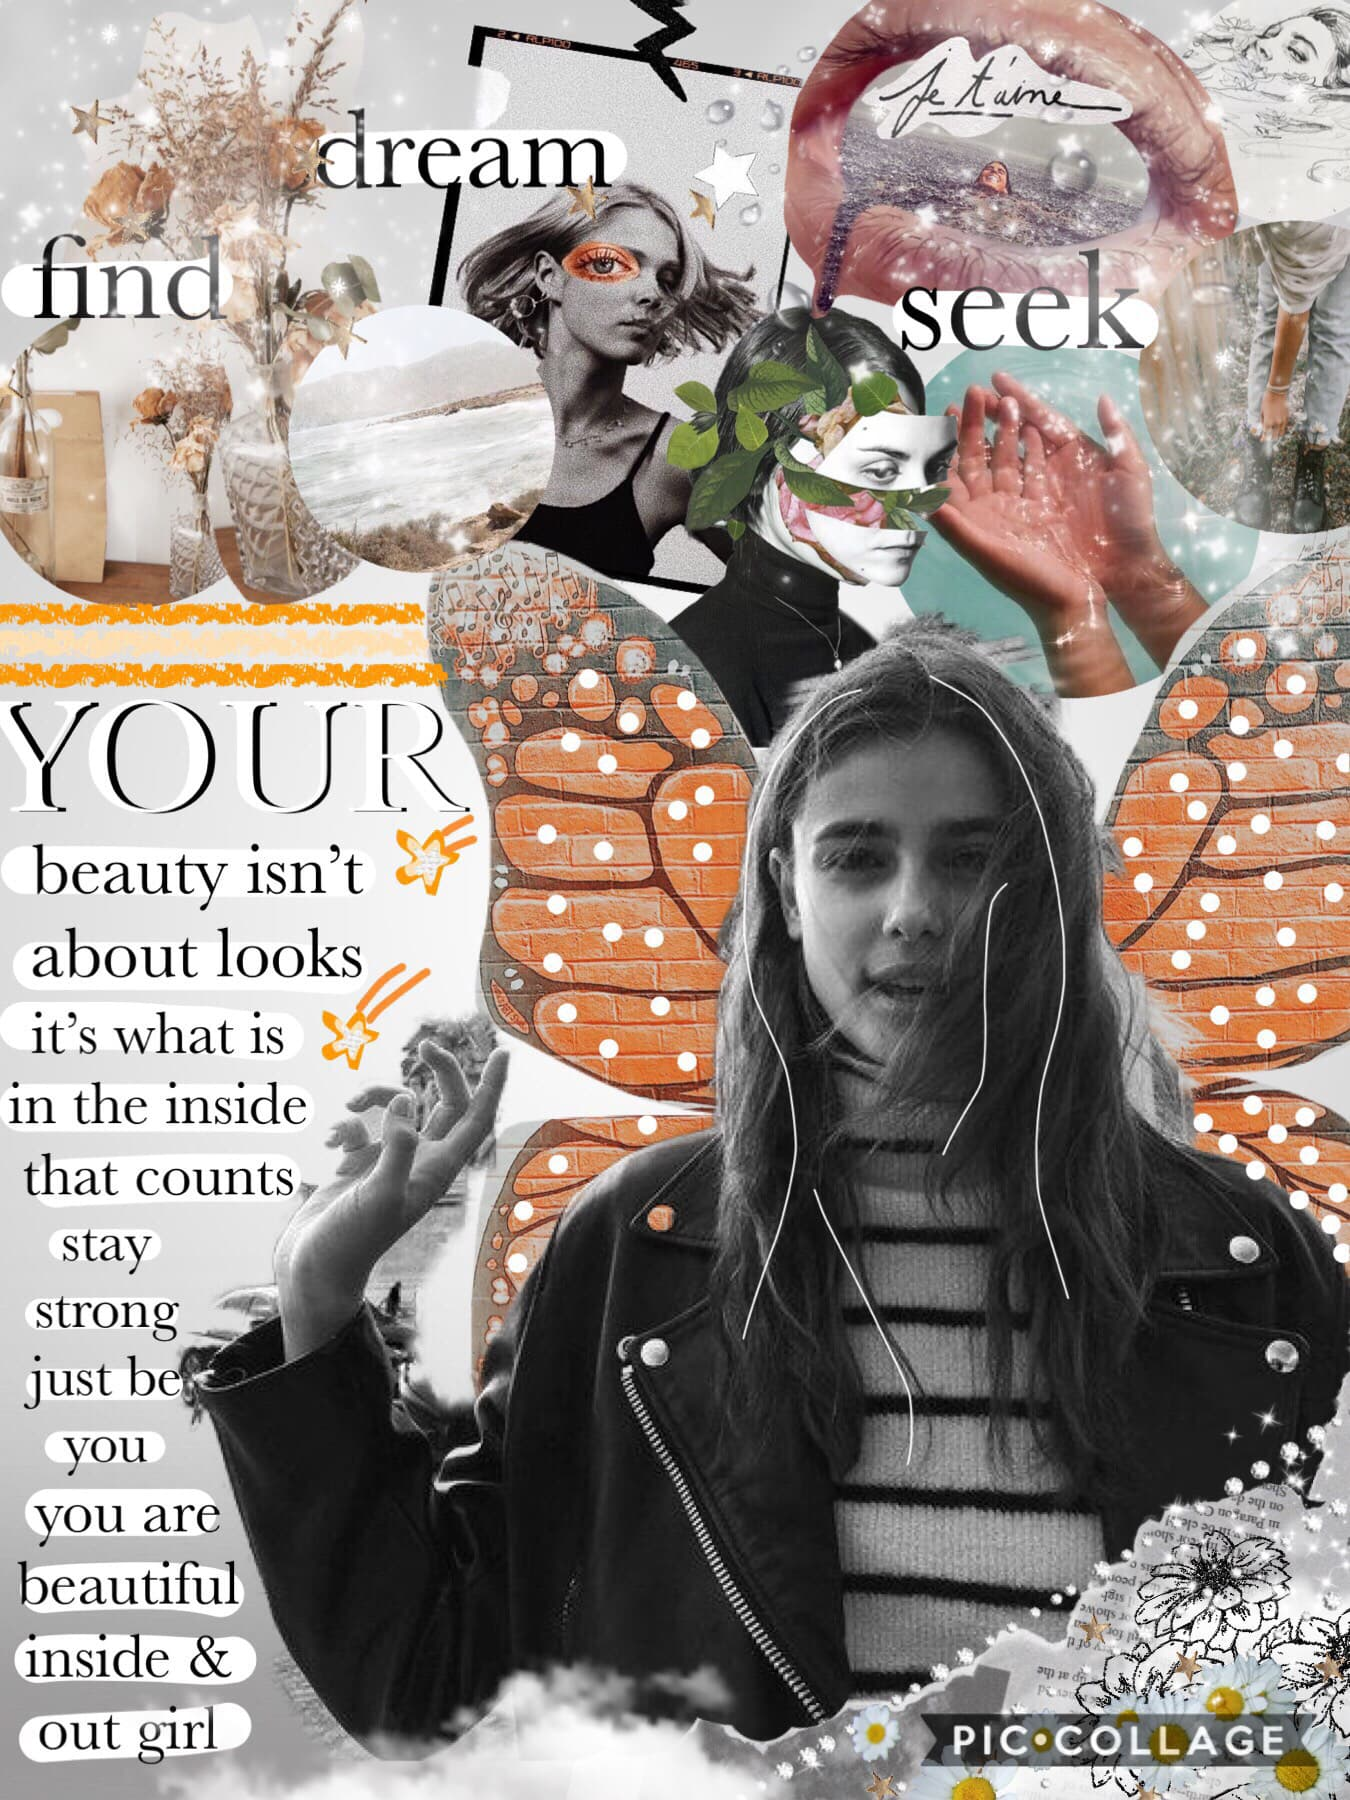 ✰ tap here! ✰  hiya everyone! 🌿 I'm feeling so happy atm it's a vibeee🌴 aha. lifes been so hectic atm but im still managing to post often! 🌷💖 hehe here's a QOTD: best feeling in the world? AOTD: the feeling of getting featured I love it!🍊⚡️ anyone wanna c